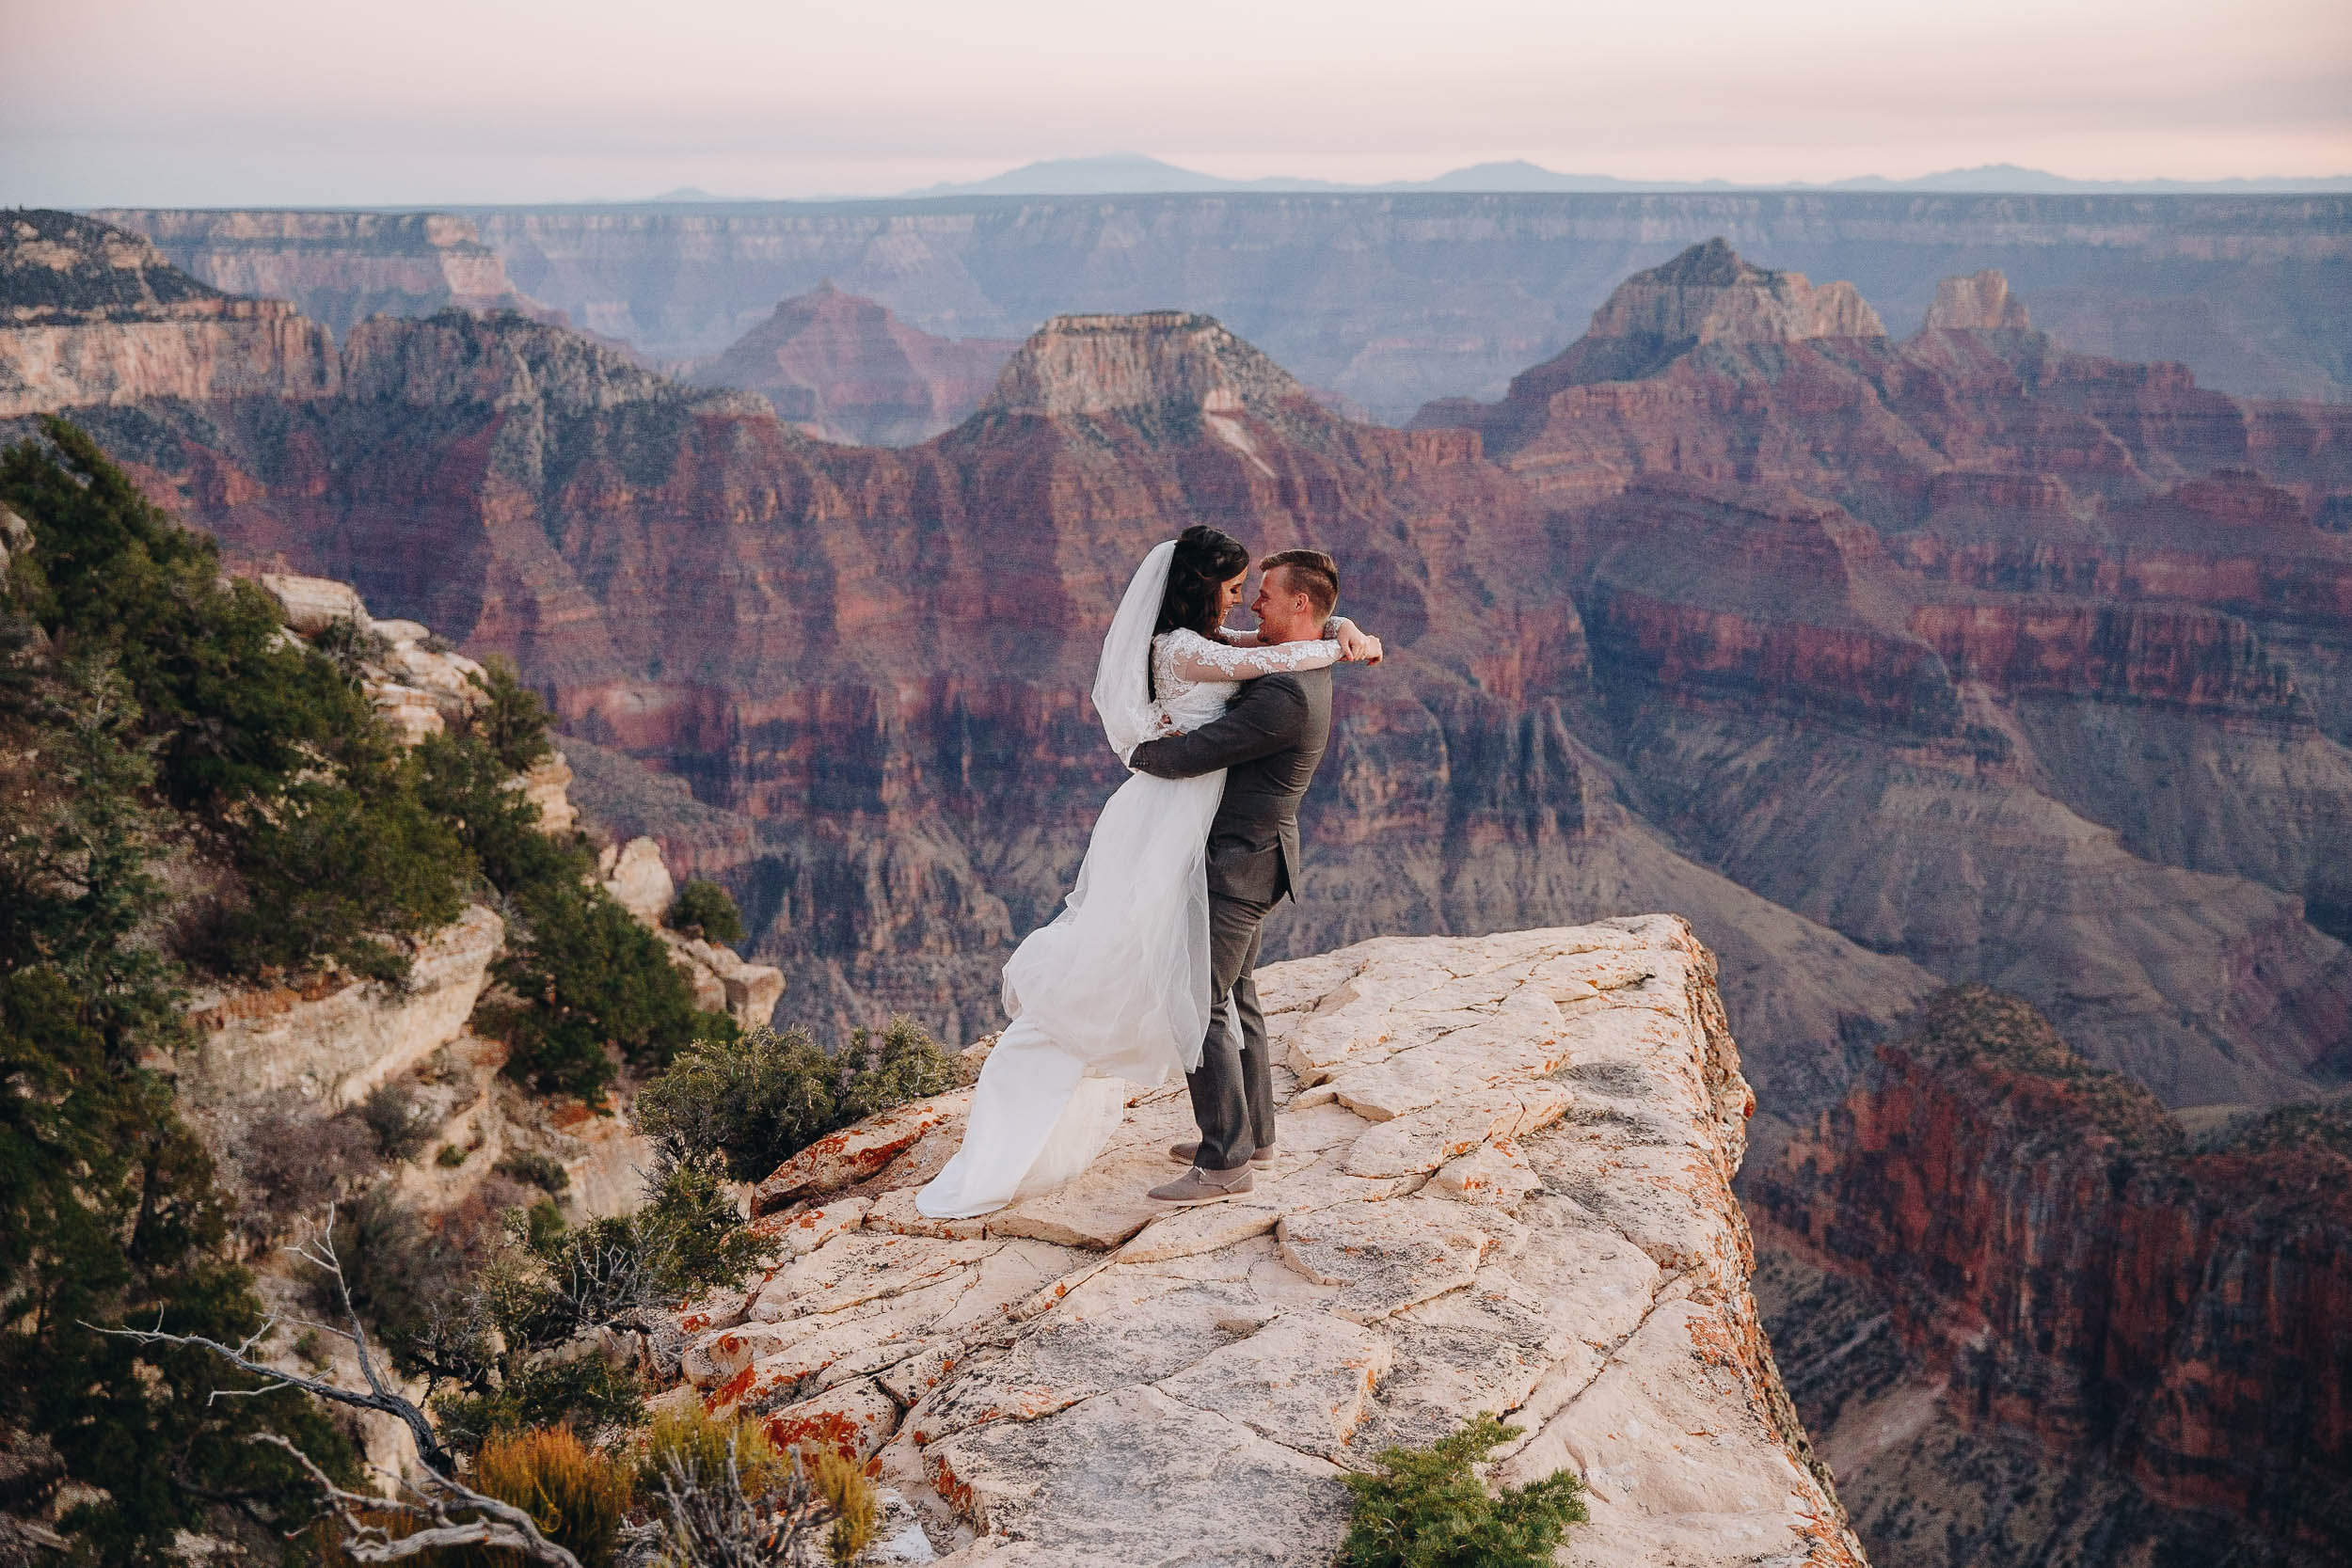 Bride and groom intimate wedding portrait in front of epic view of the Grand Canyon